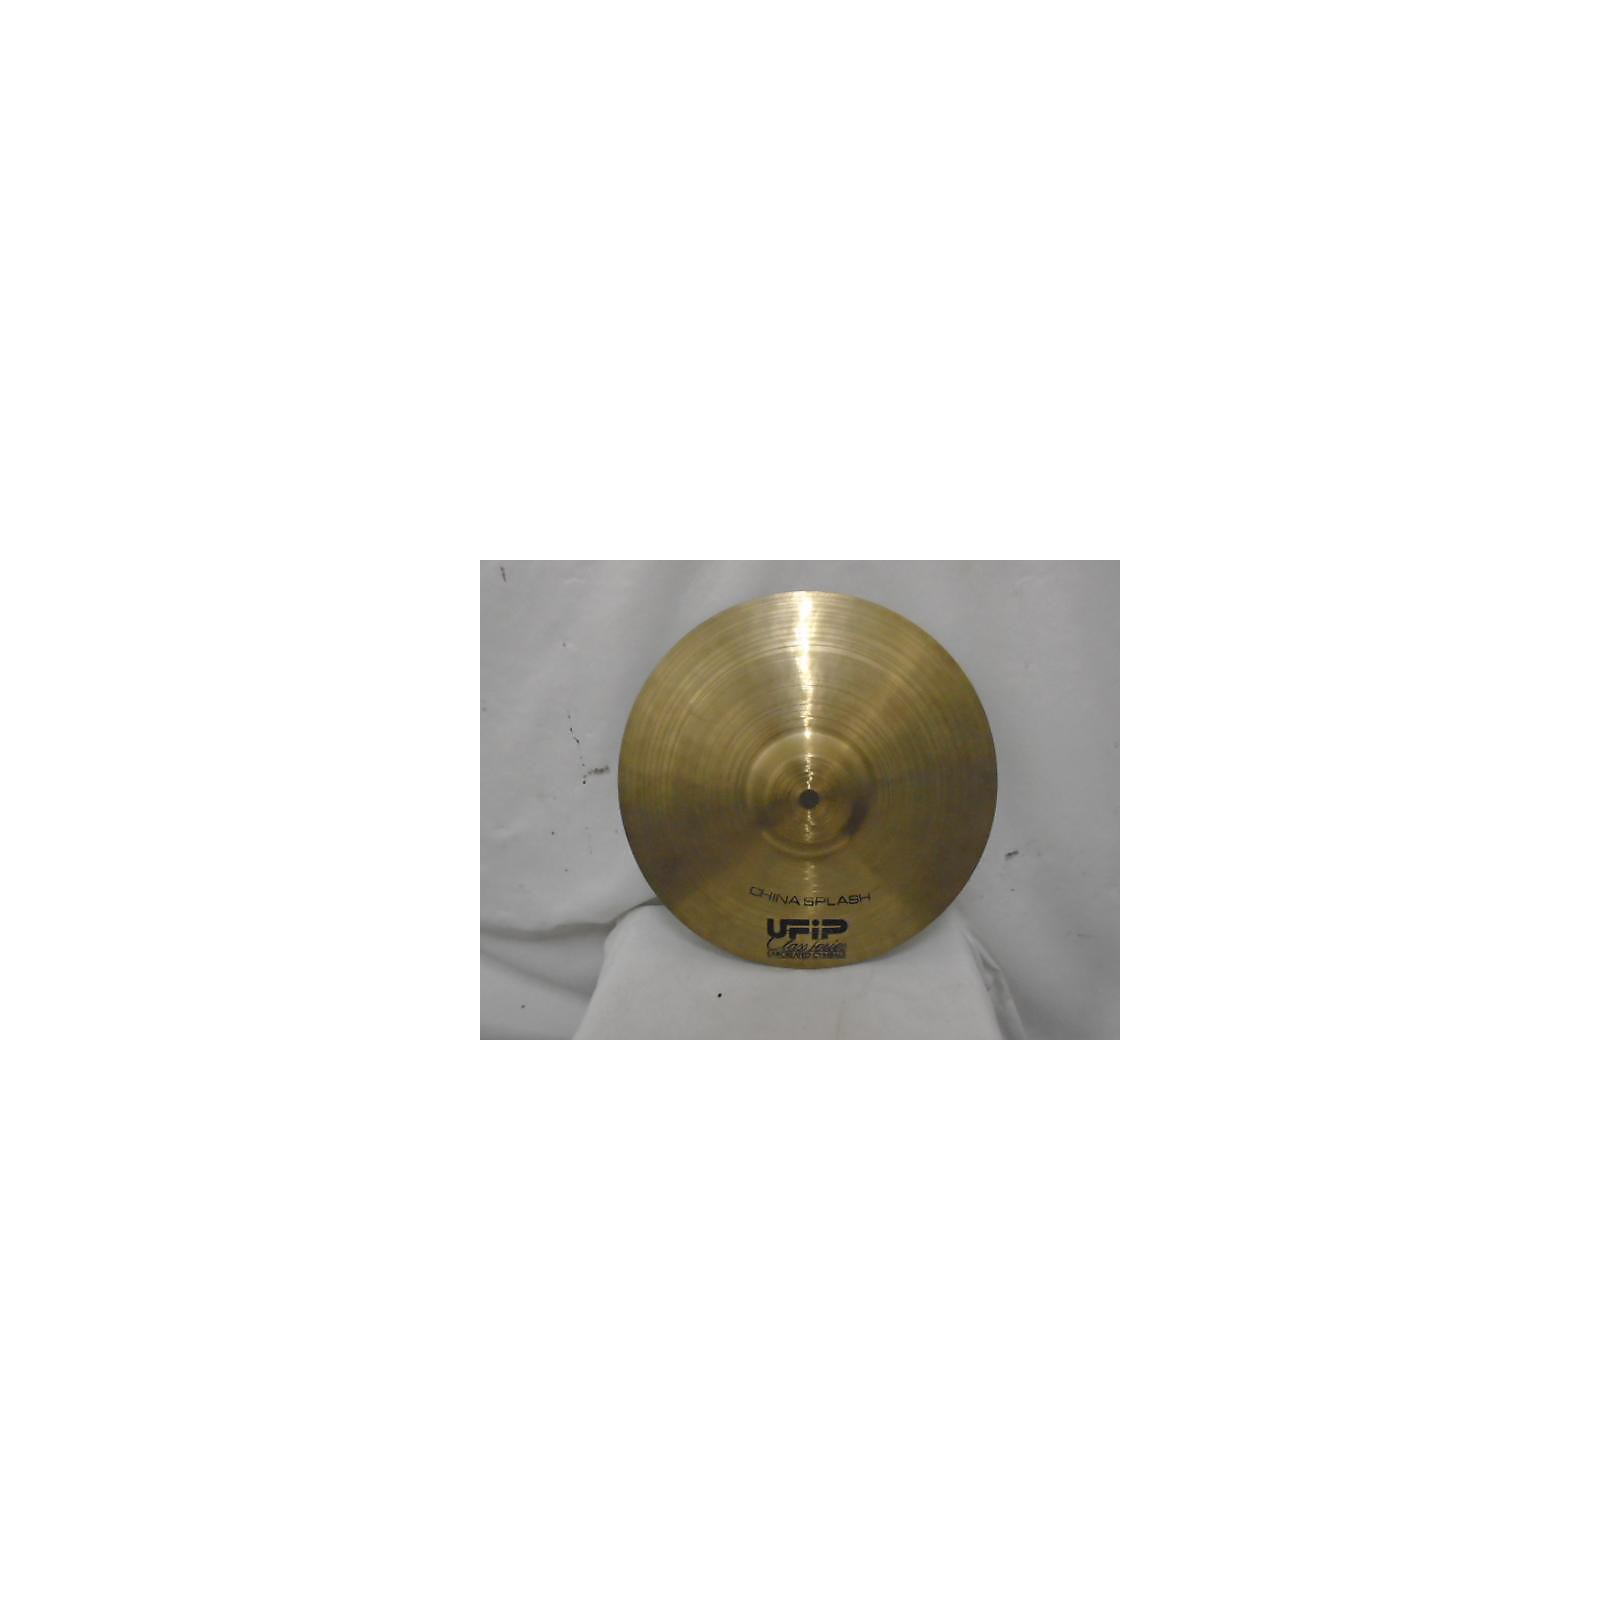 UFIP 11in Class Series Cymbal